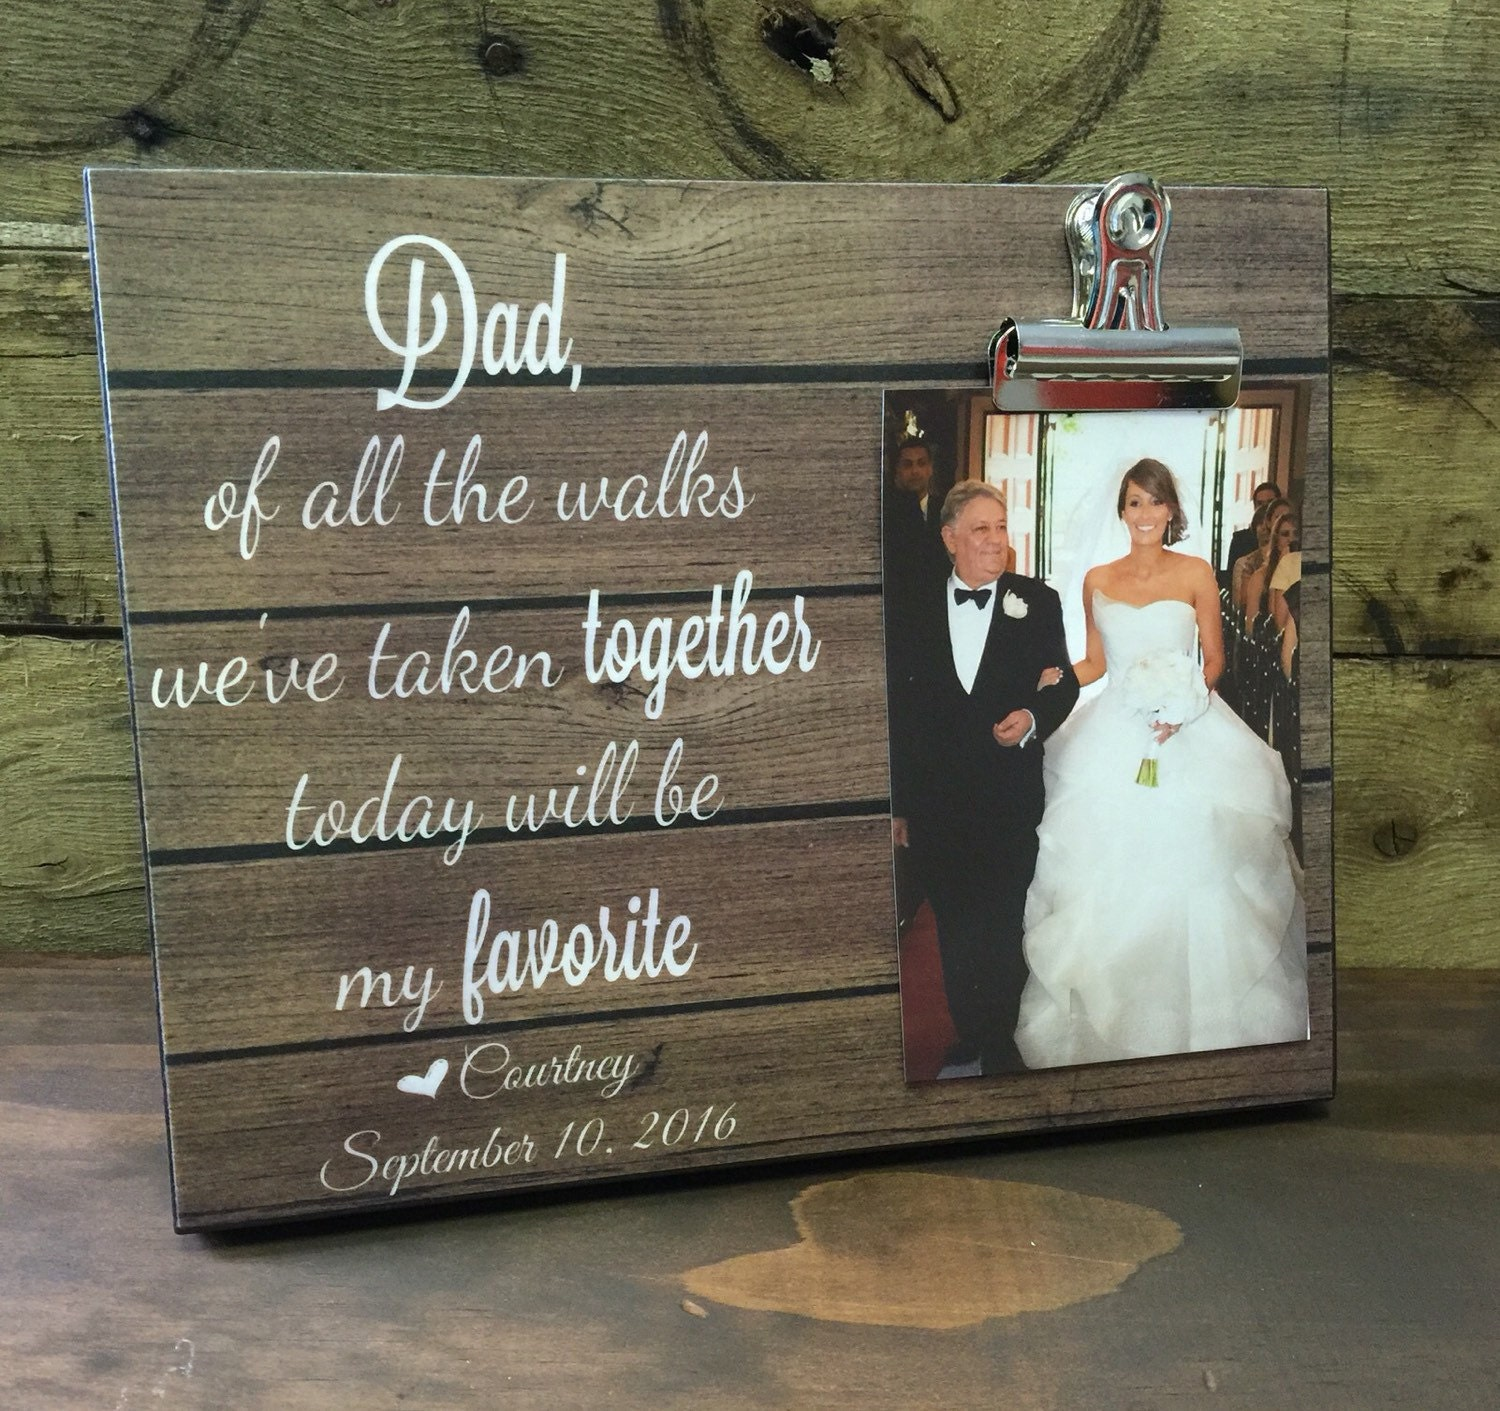 Wedding Gift Dad : Personalized Wedding Gift Dad Of All The Walks Father Of The